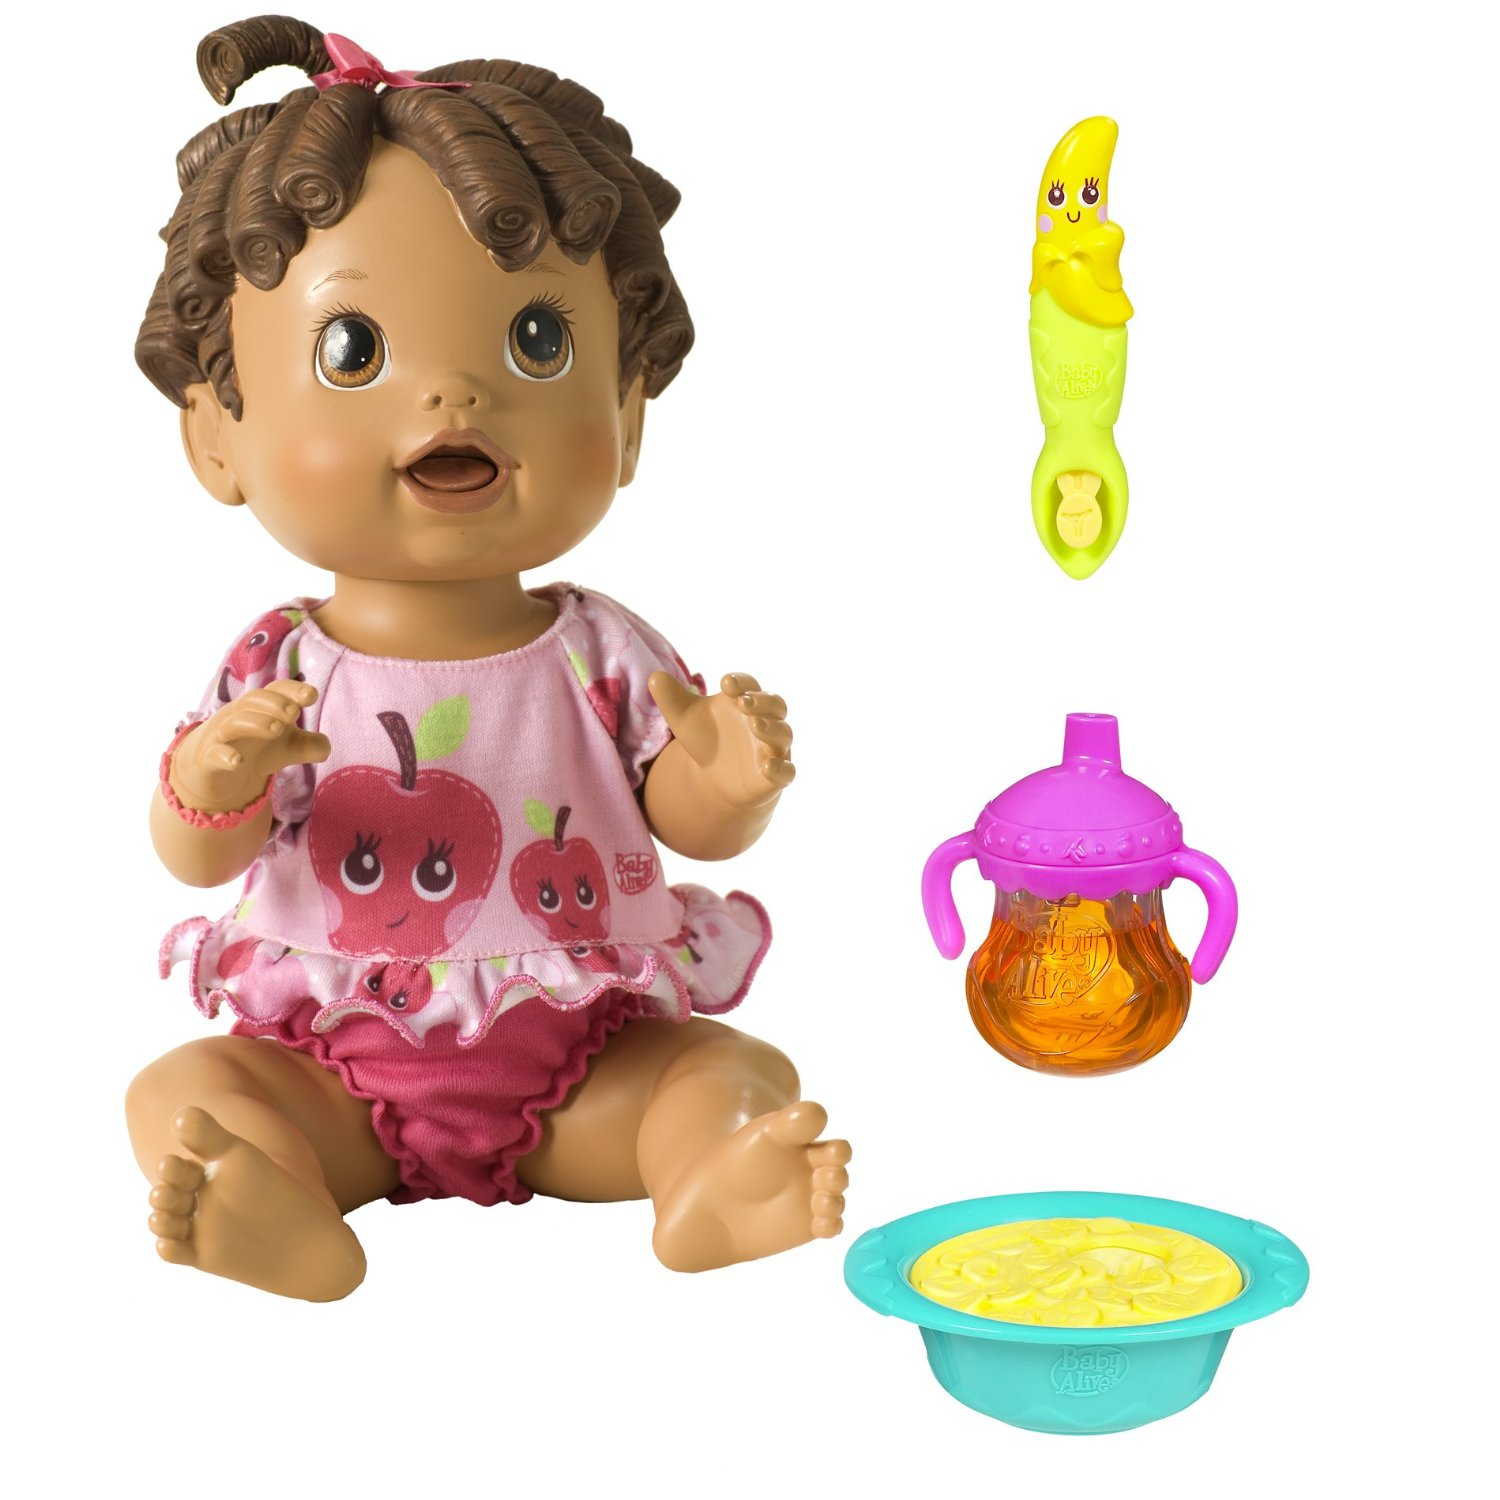 Baby Alive Baby All Gone Bilingual by Hasbro -- SpanglishBaby's 2013 Holiday Gift Guide for Bilingual Kids